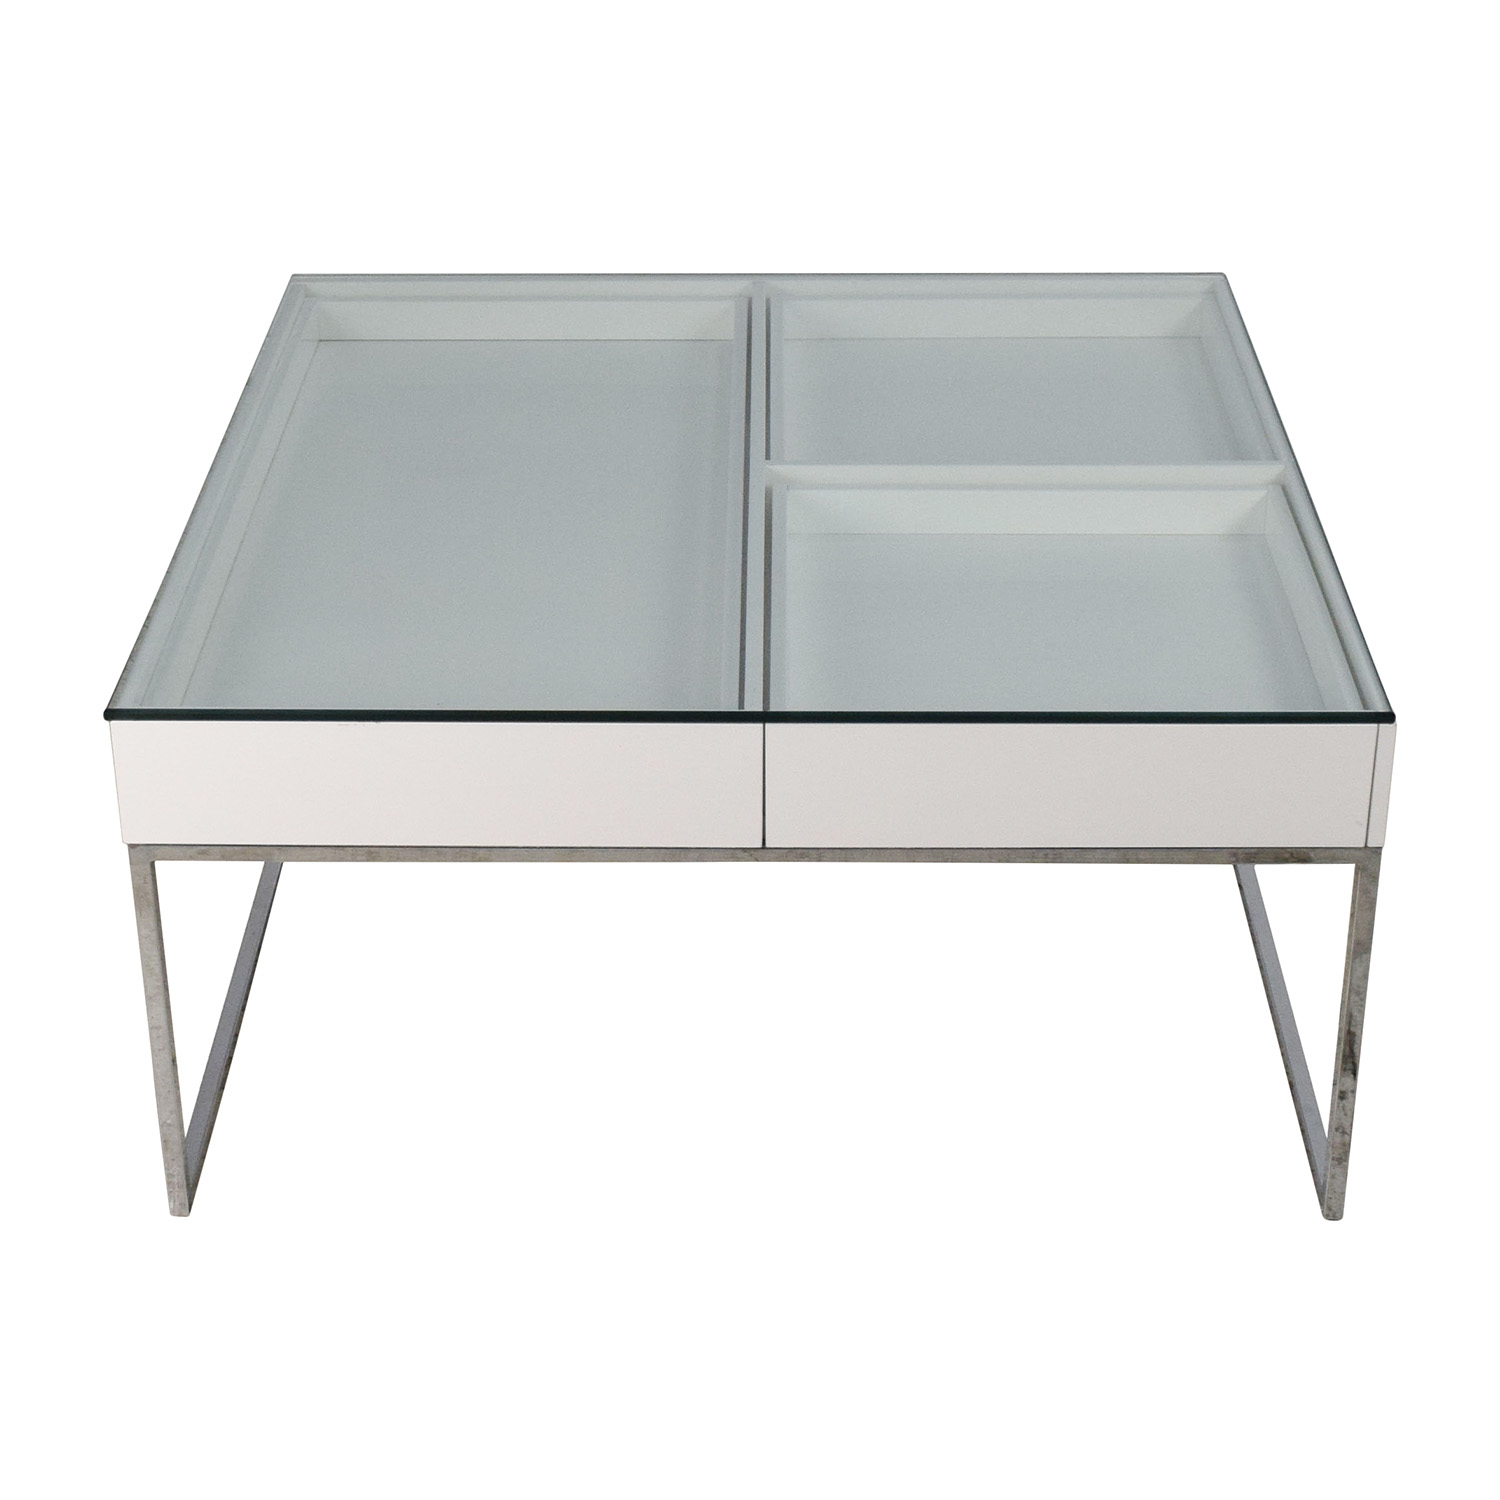 74% OFF - BoConcept BoConcept White Coffee Table / Tables